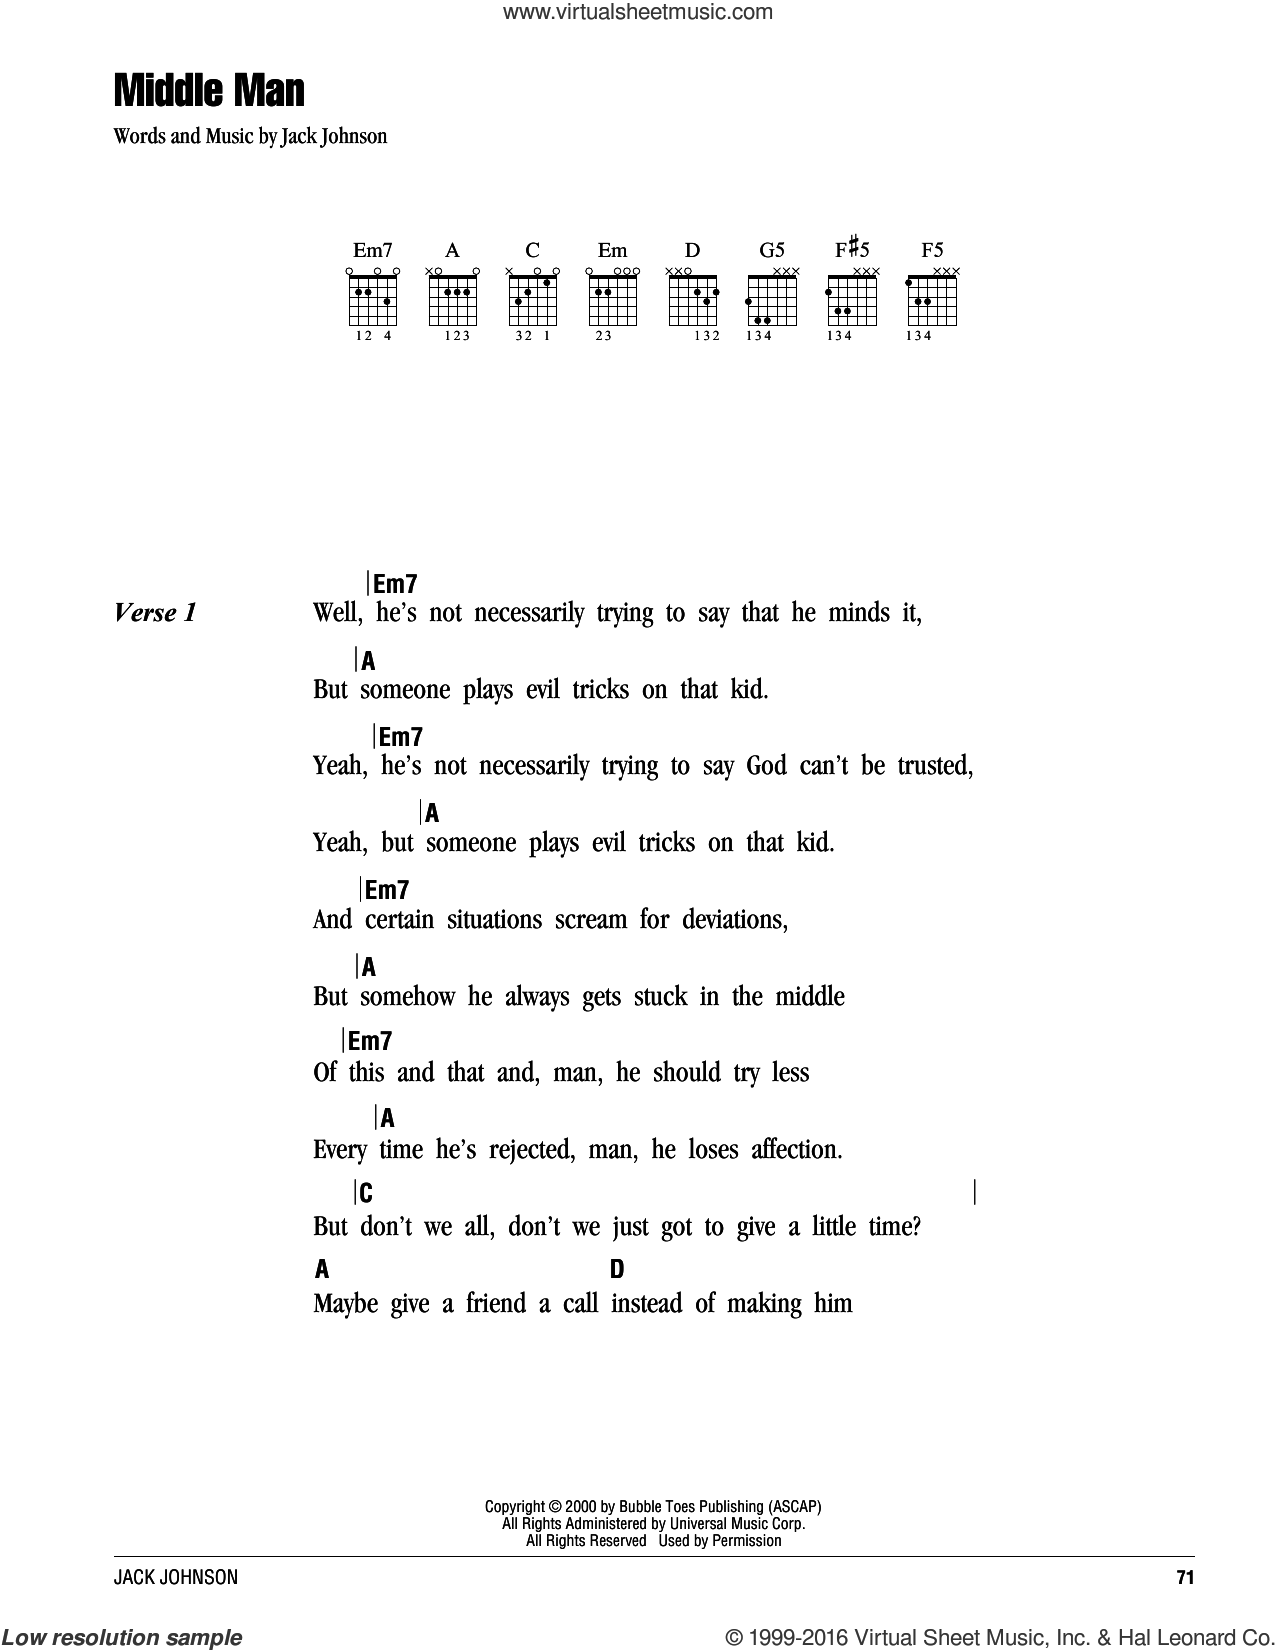 Middle Man sheet music for guitar (chords) by Jack Johnson, intermediate. Score Image Preview.